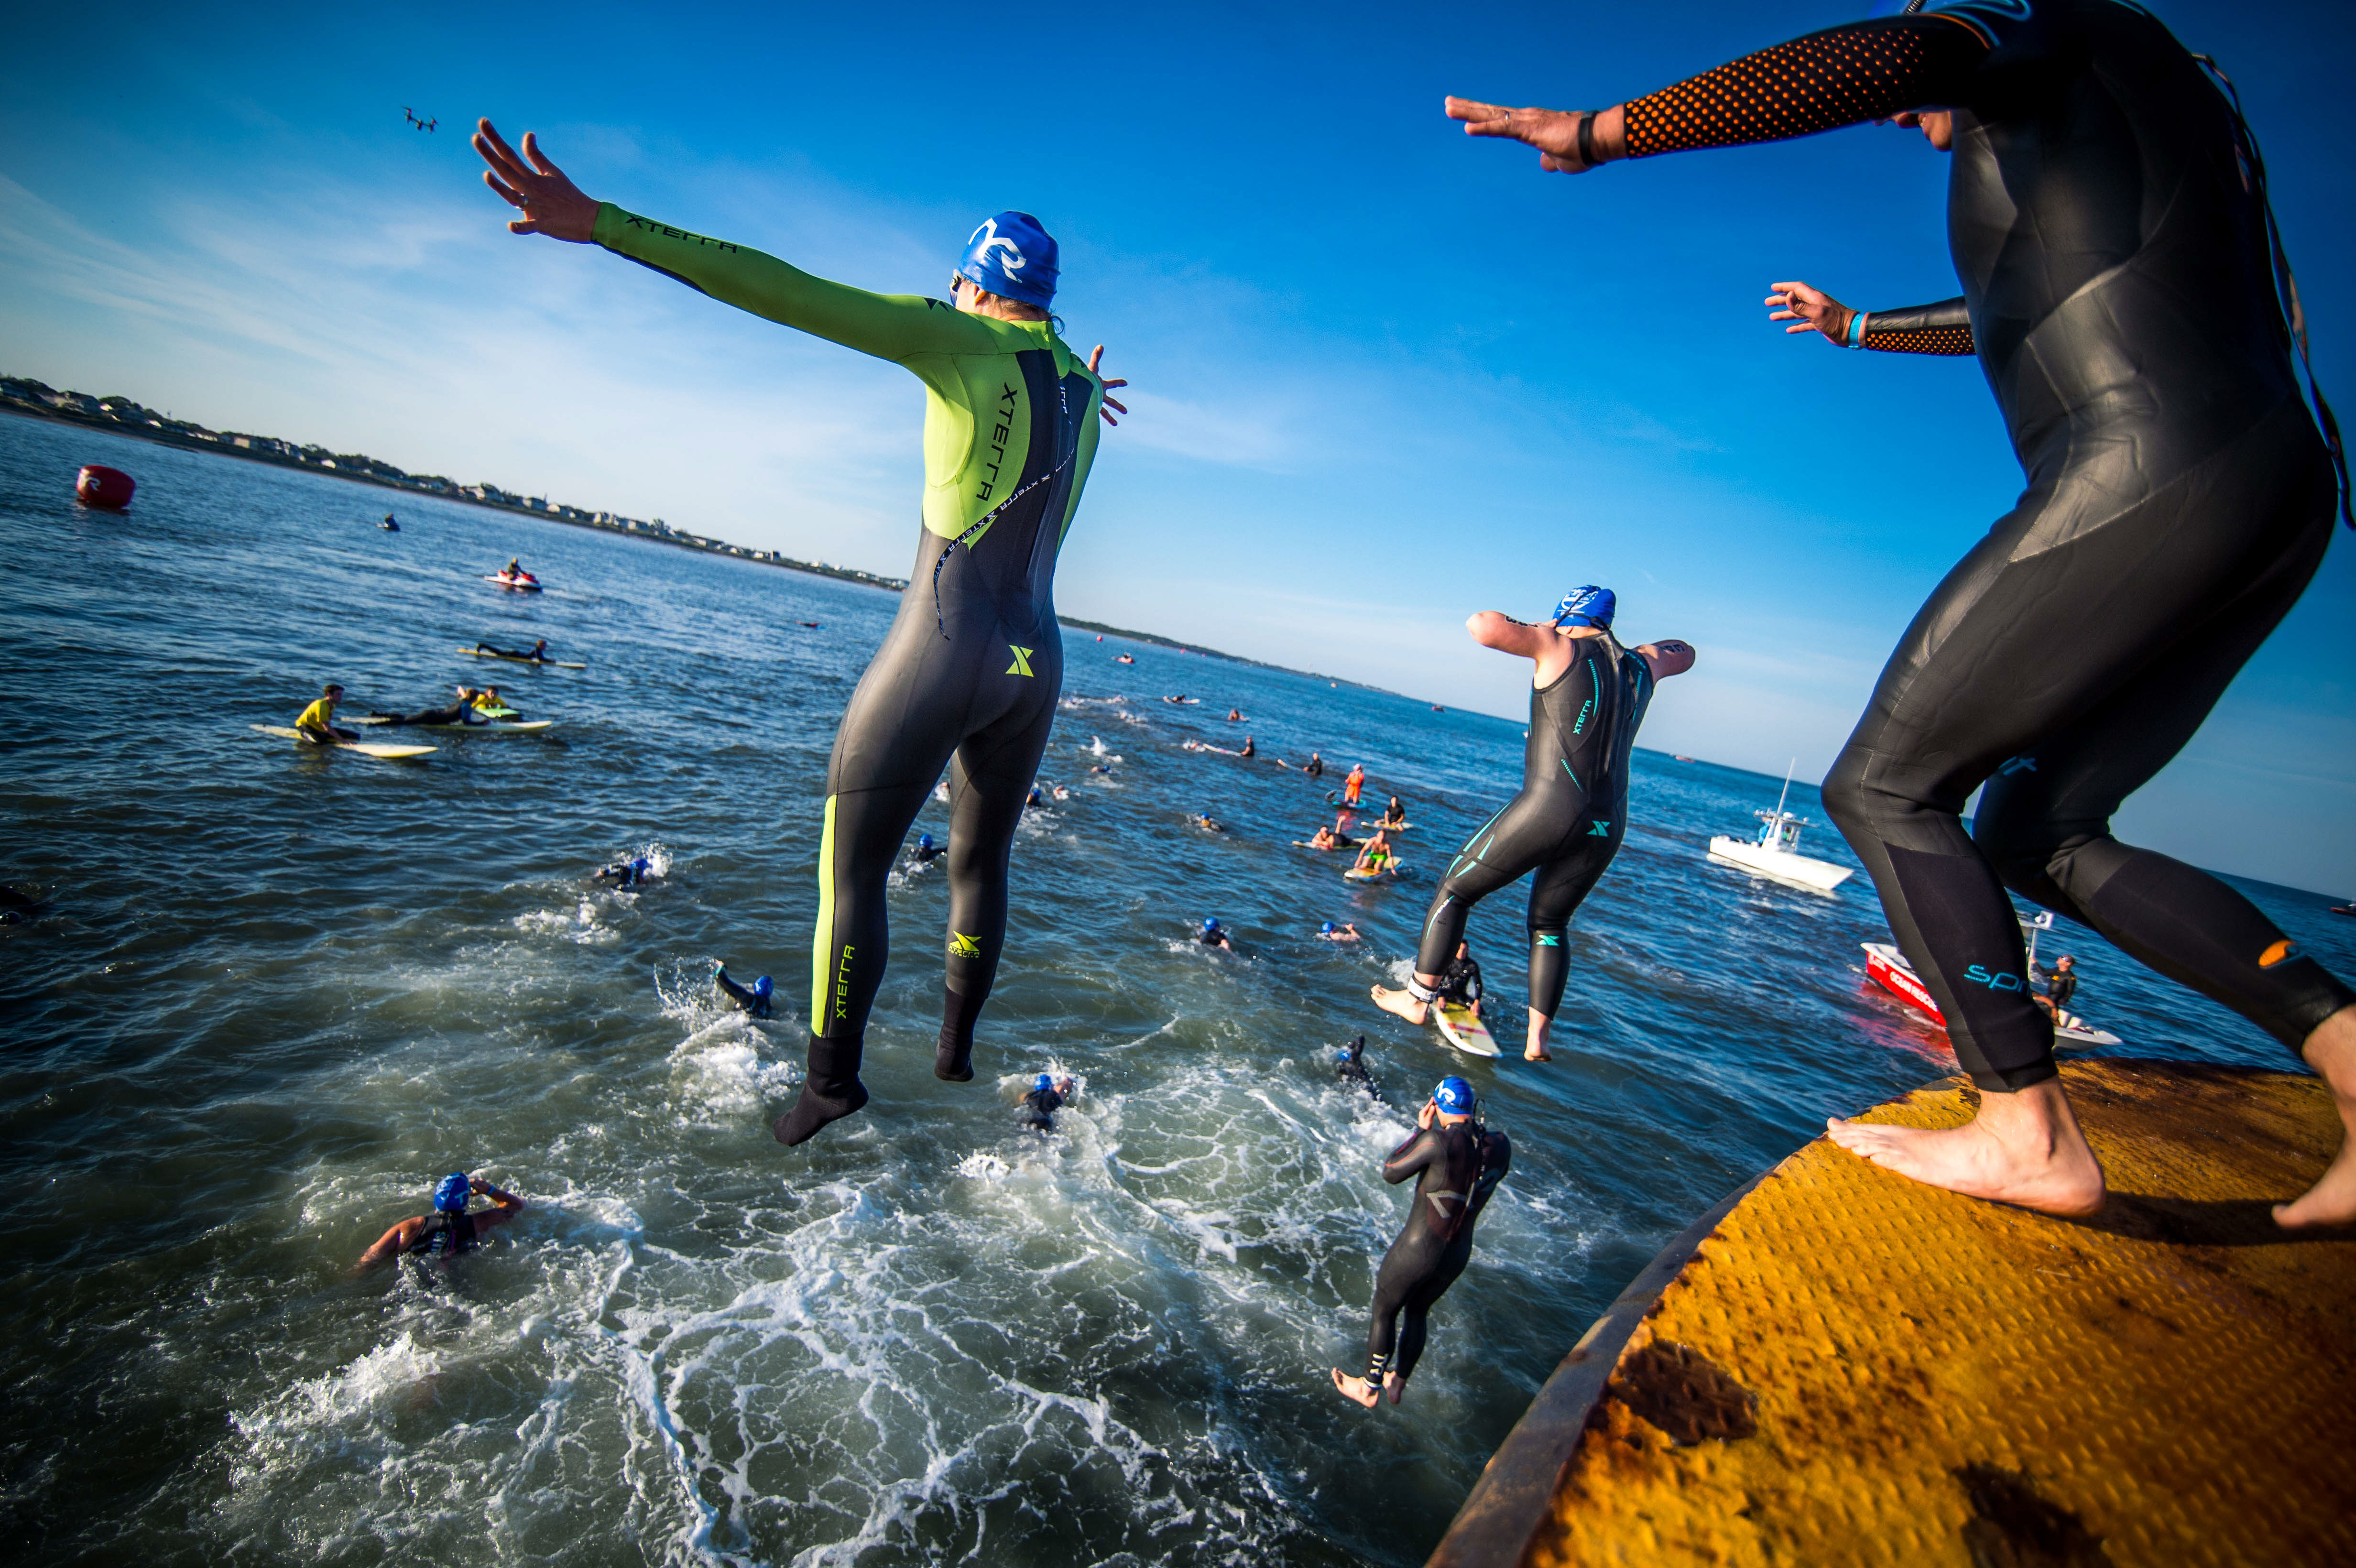 arms out - Escape From Lewes Open Water Classic Copy